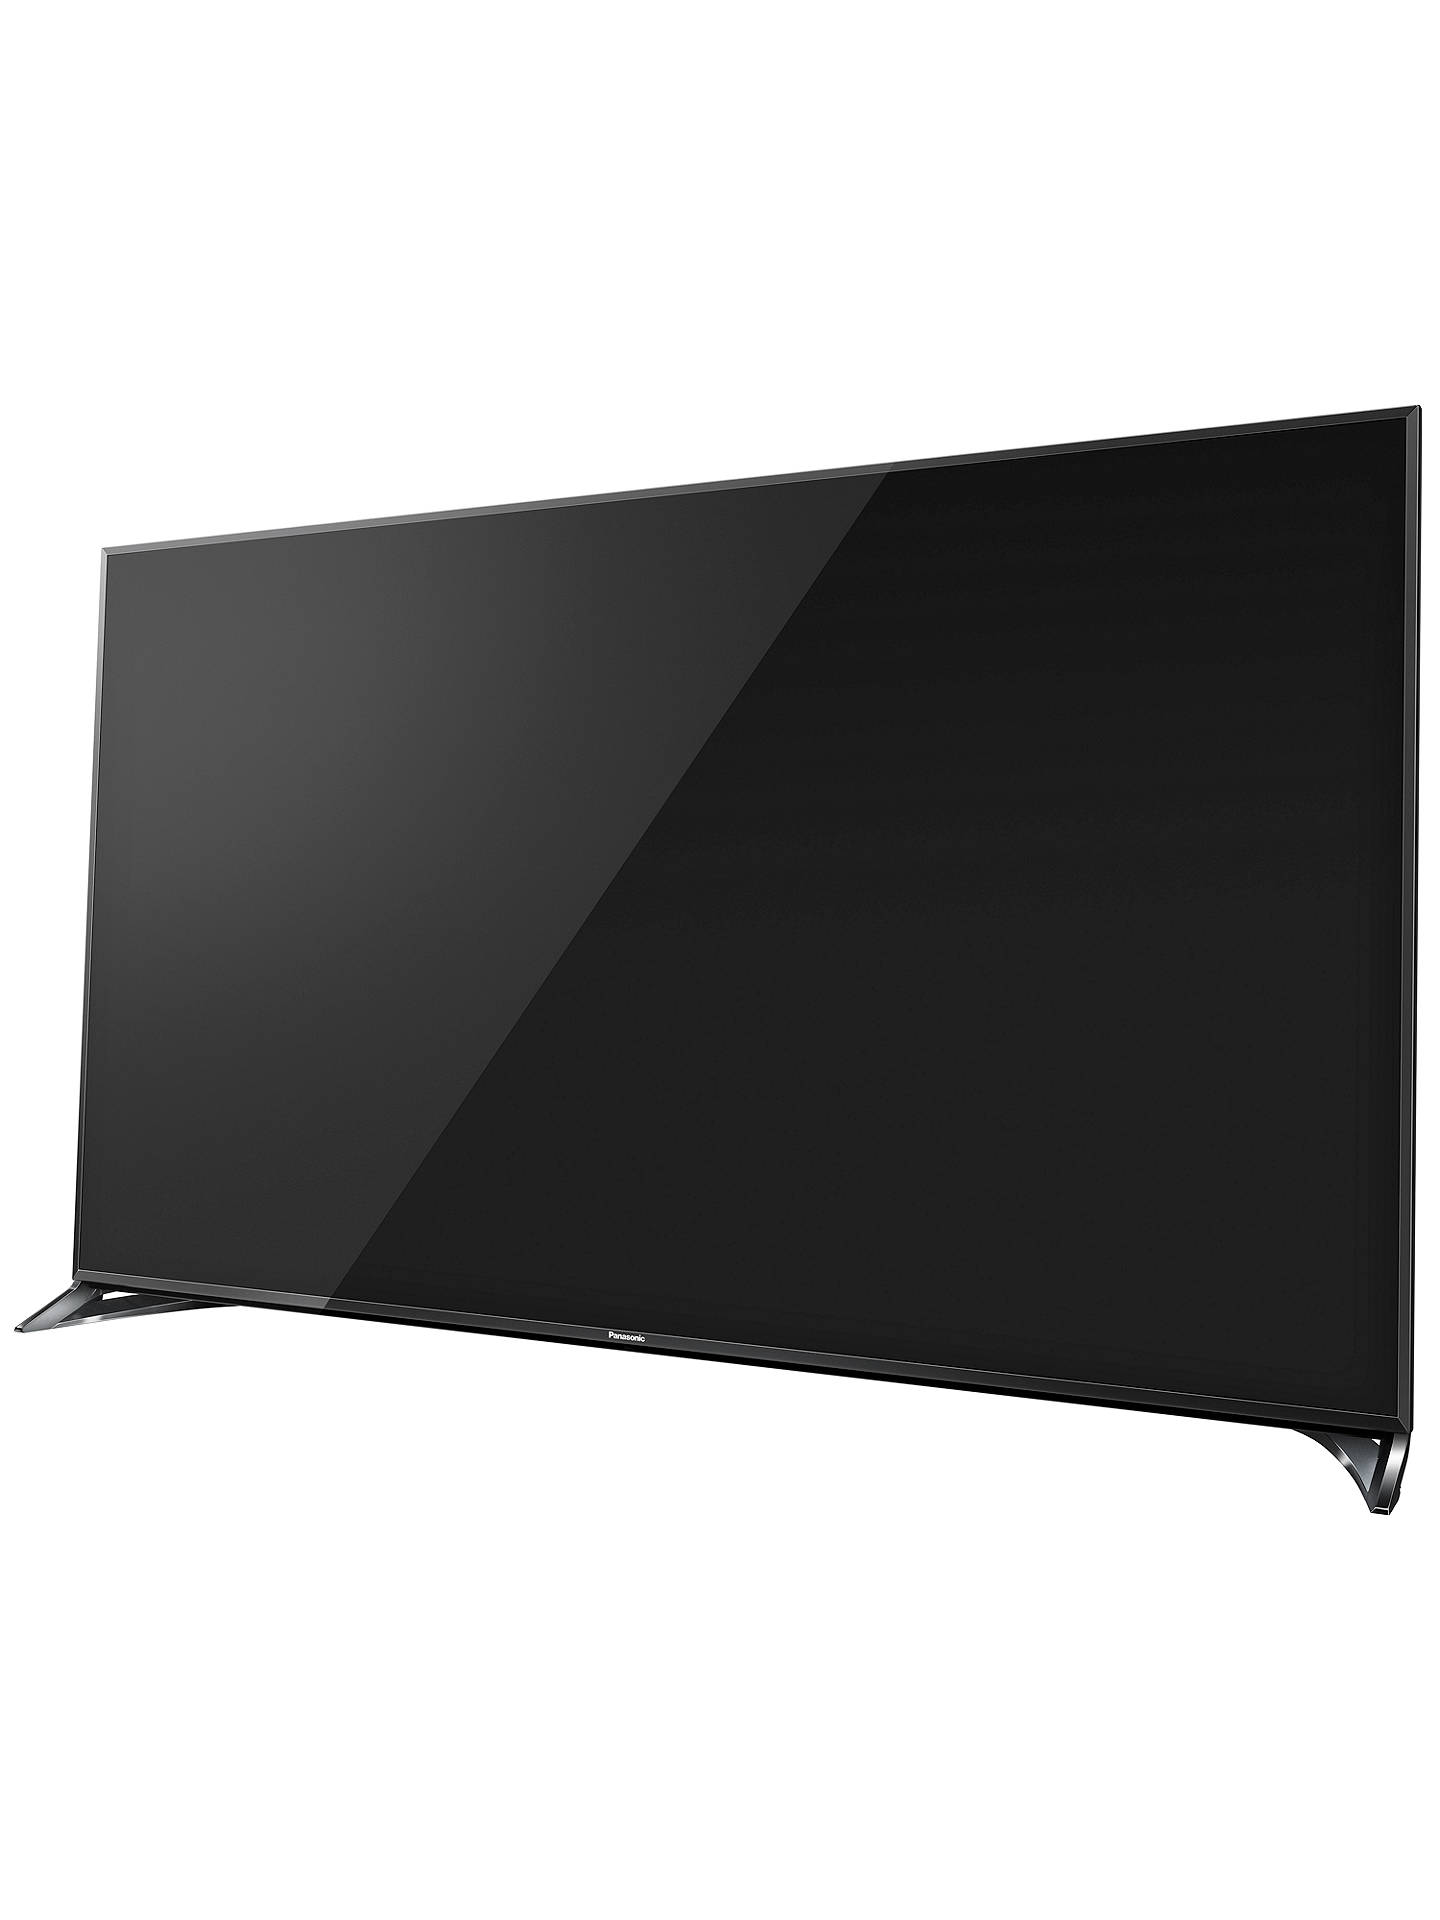 "BuyPanasonic Viera TX-65CX802B LED 4K Ultra-HD 3D Smart TV, 65"" with Freeview HD/freesat HD, Built-In Wi-Fi & Voice Assistant Online at johnlewis.com"